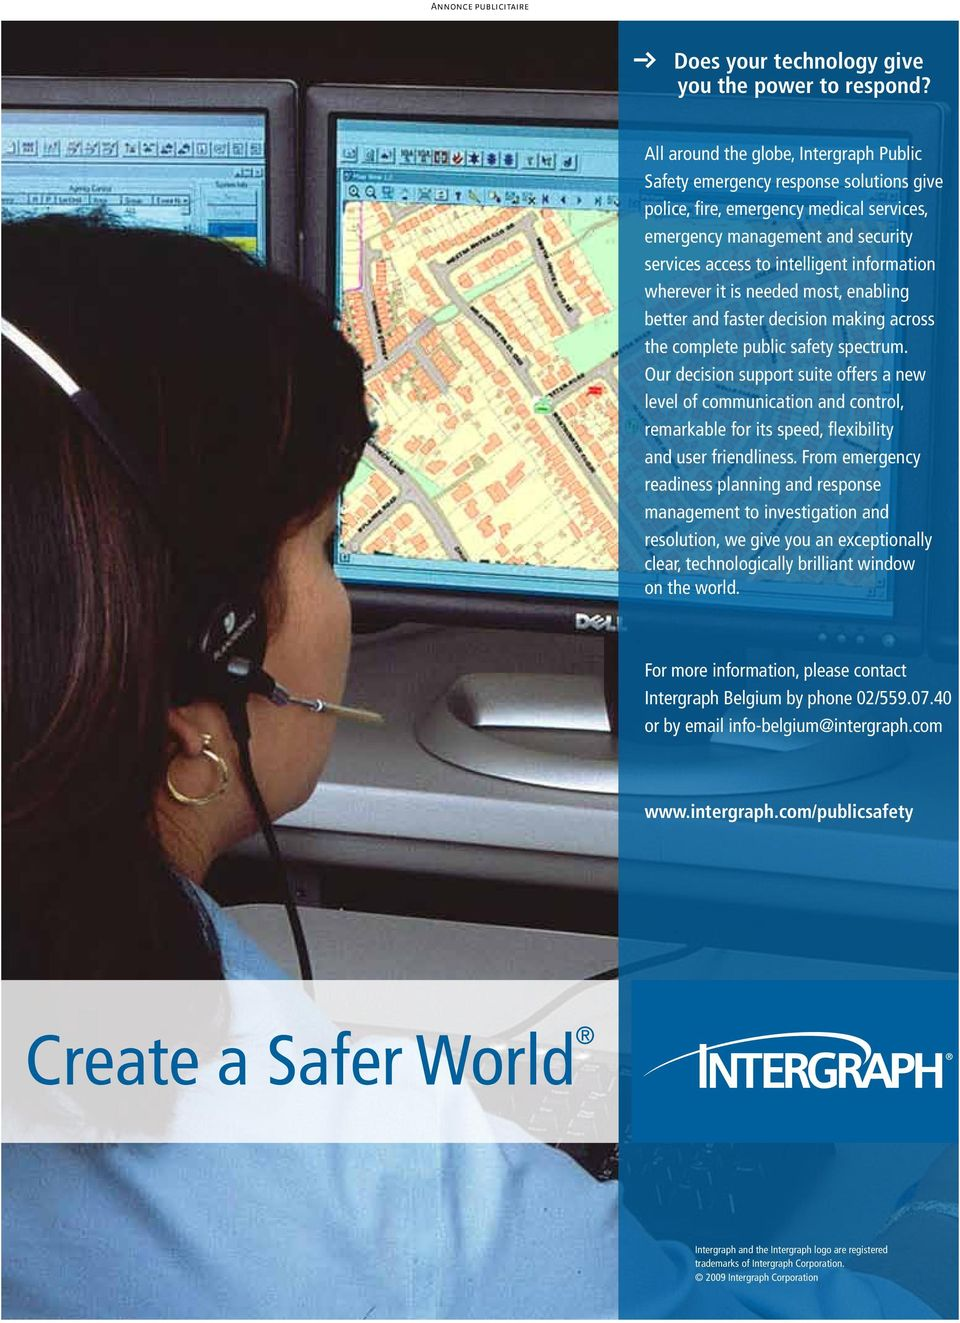 wherever it is needed most, enabling better and faster decision making across the complete public safety spectrum.